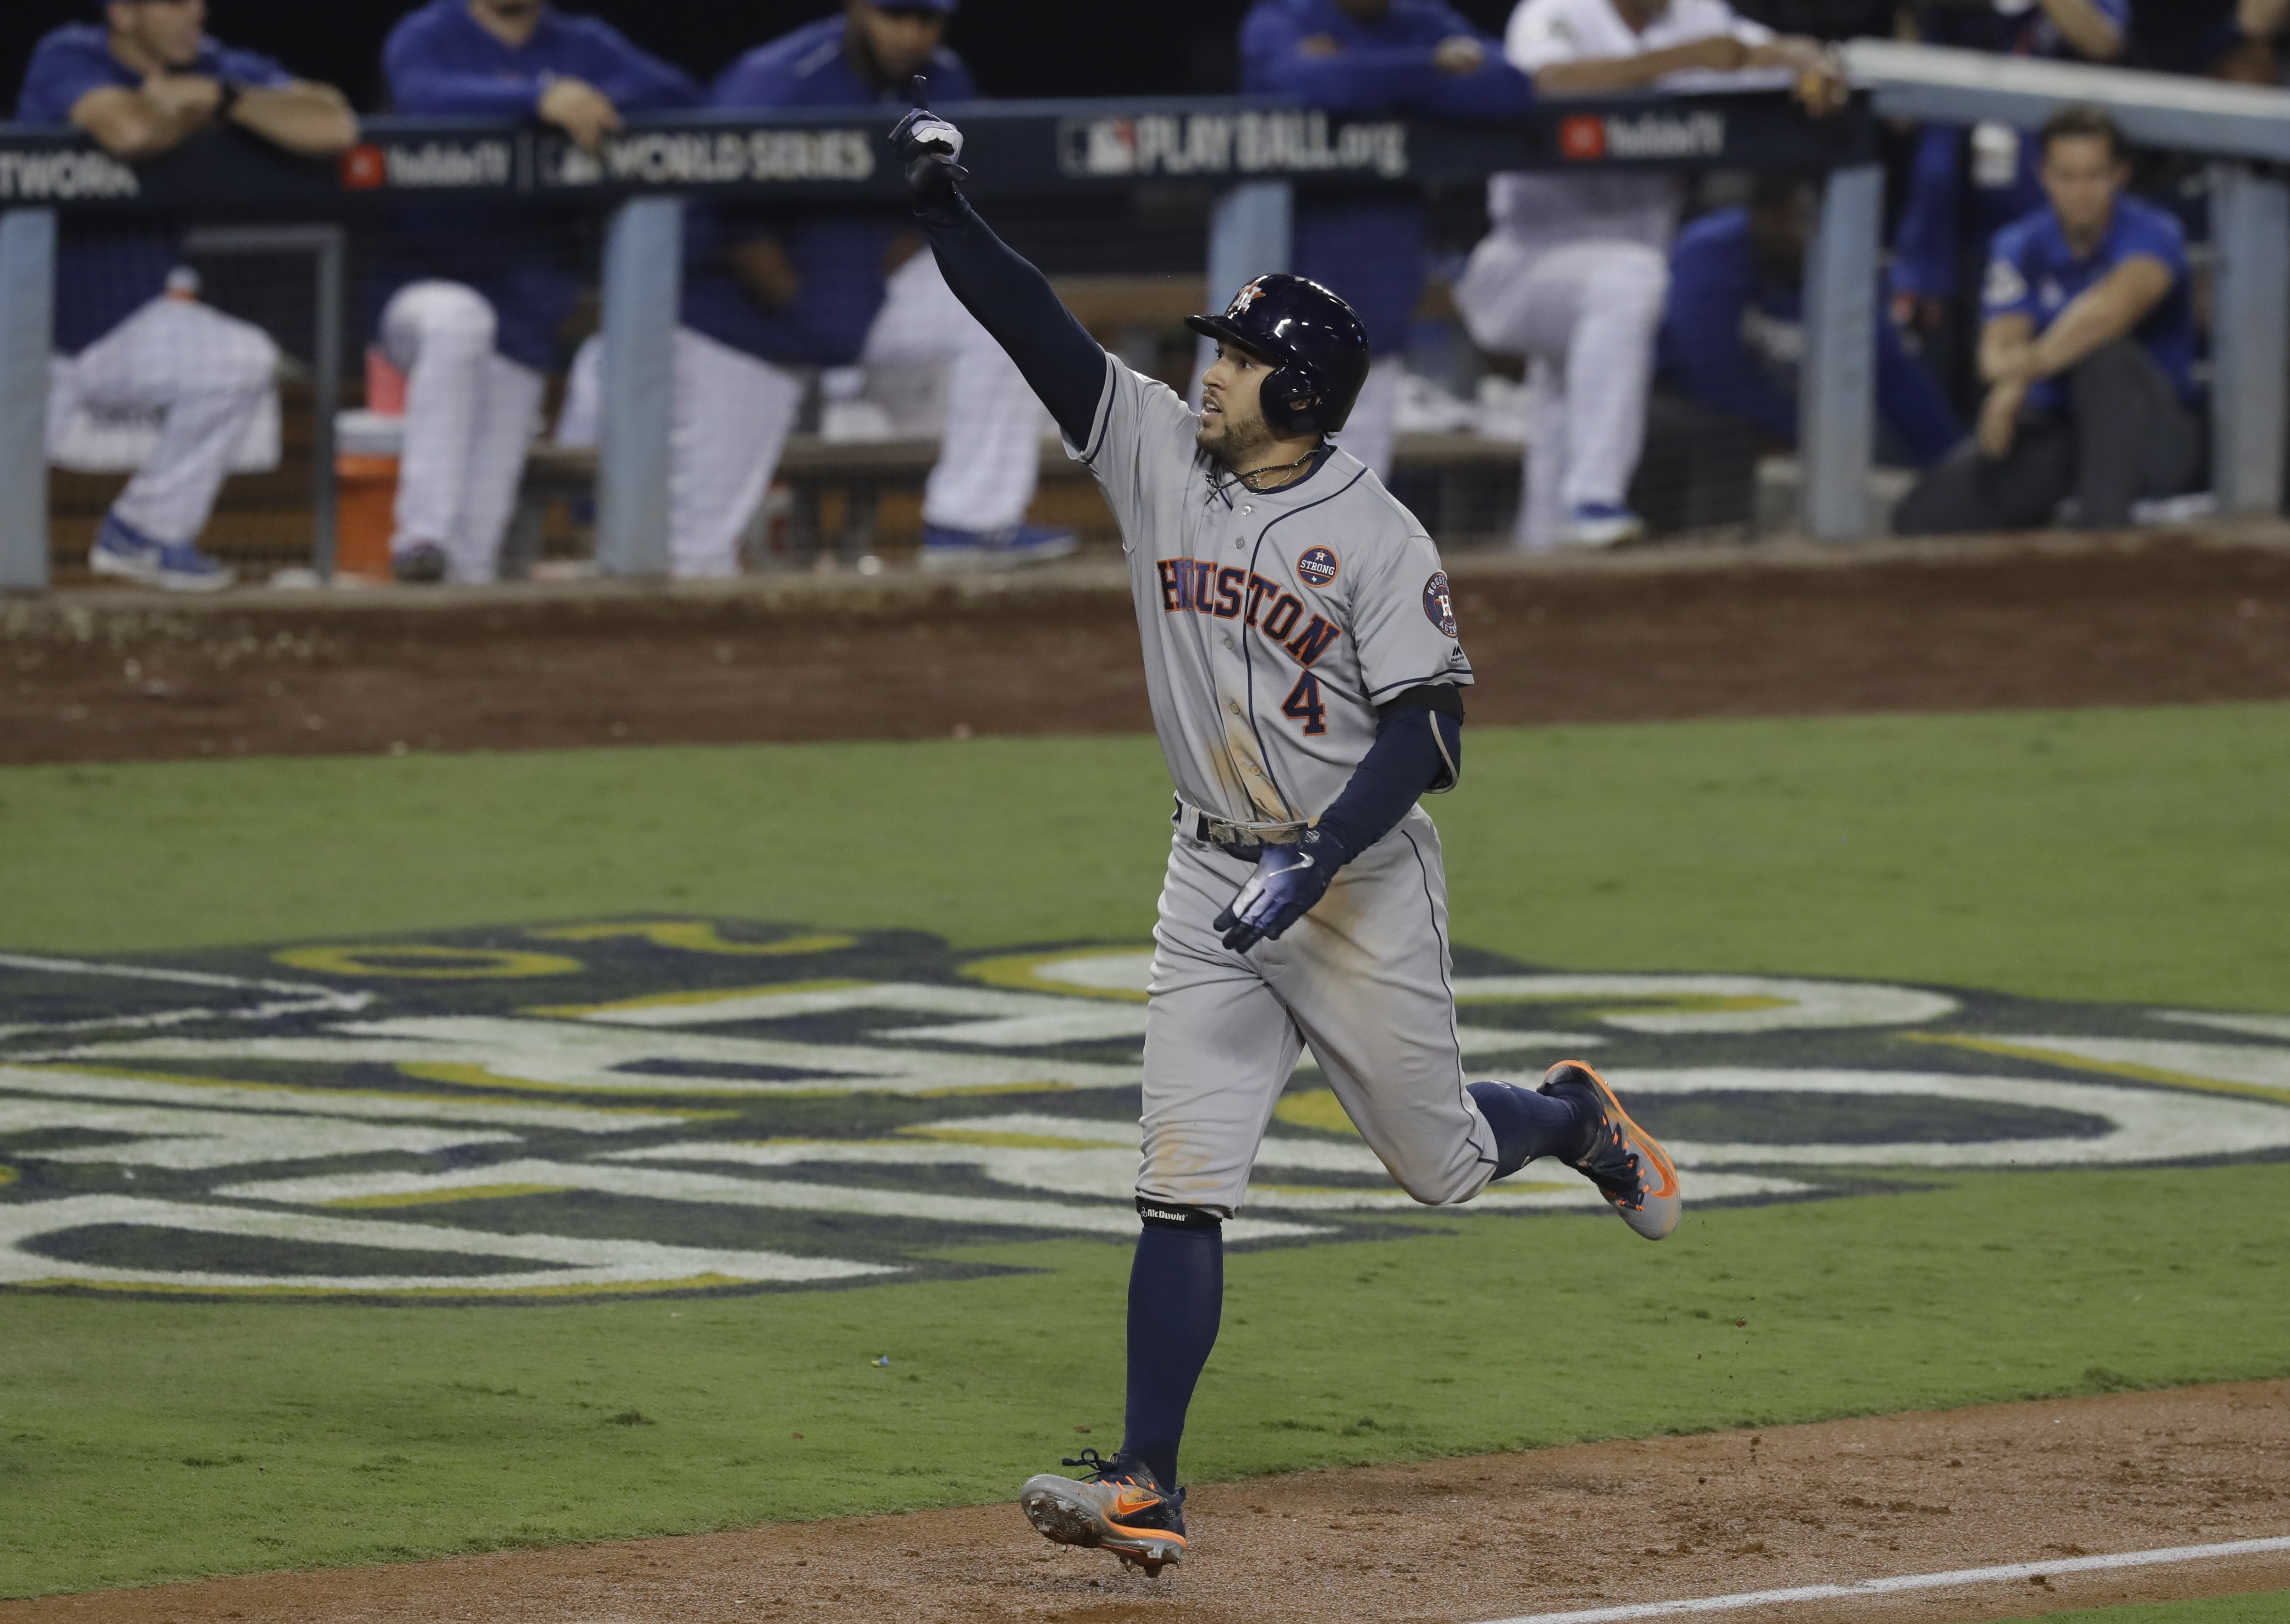 Houston Astros' George Springer celebrates after hitting a two-run home run during the 11th inning of Game 2 of baseball's World Series against the Los Angeles Dodgers Wednesday, Oct. 25, 2017, in Los Angeles. (AP Photo/Alex Gallardo)